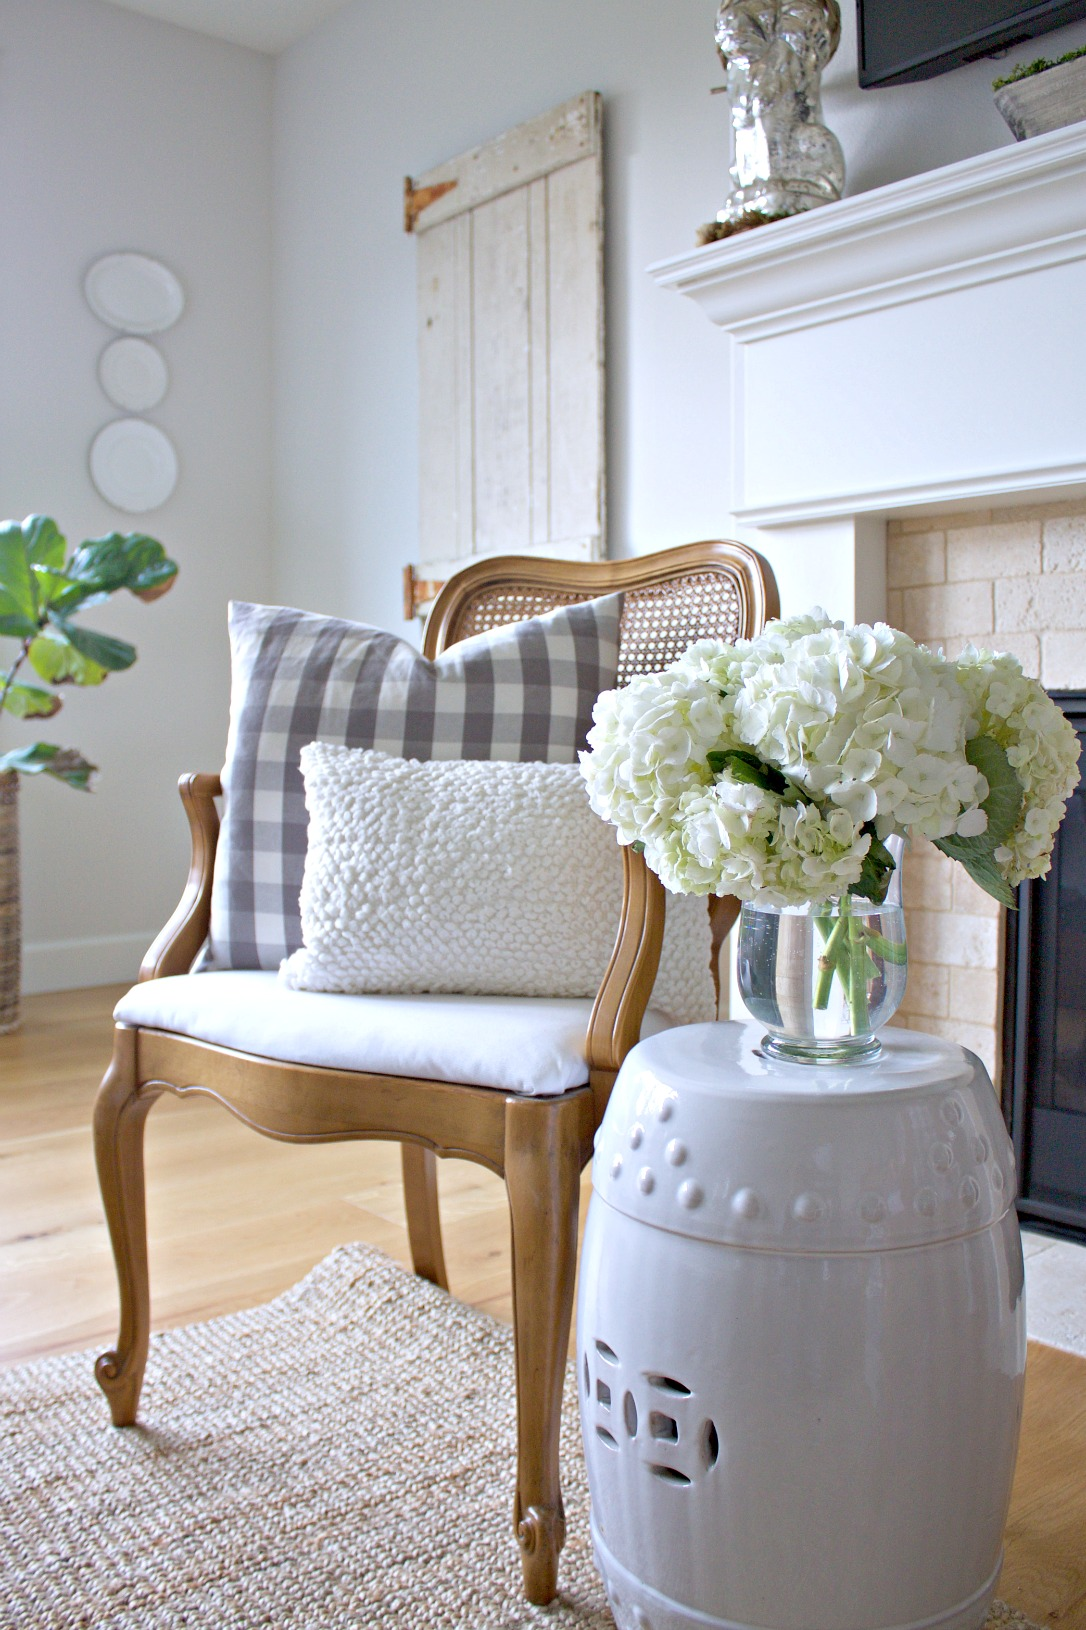 French Cane Chair and Hydrangeas